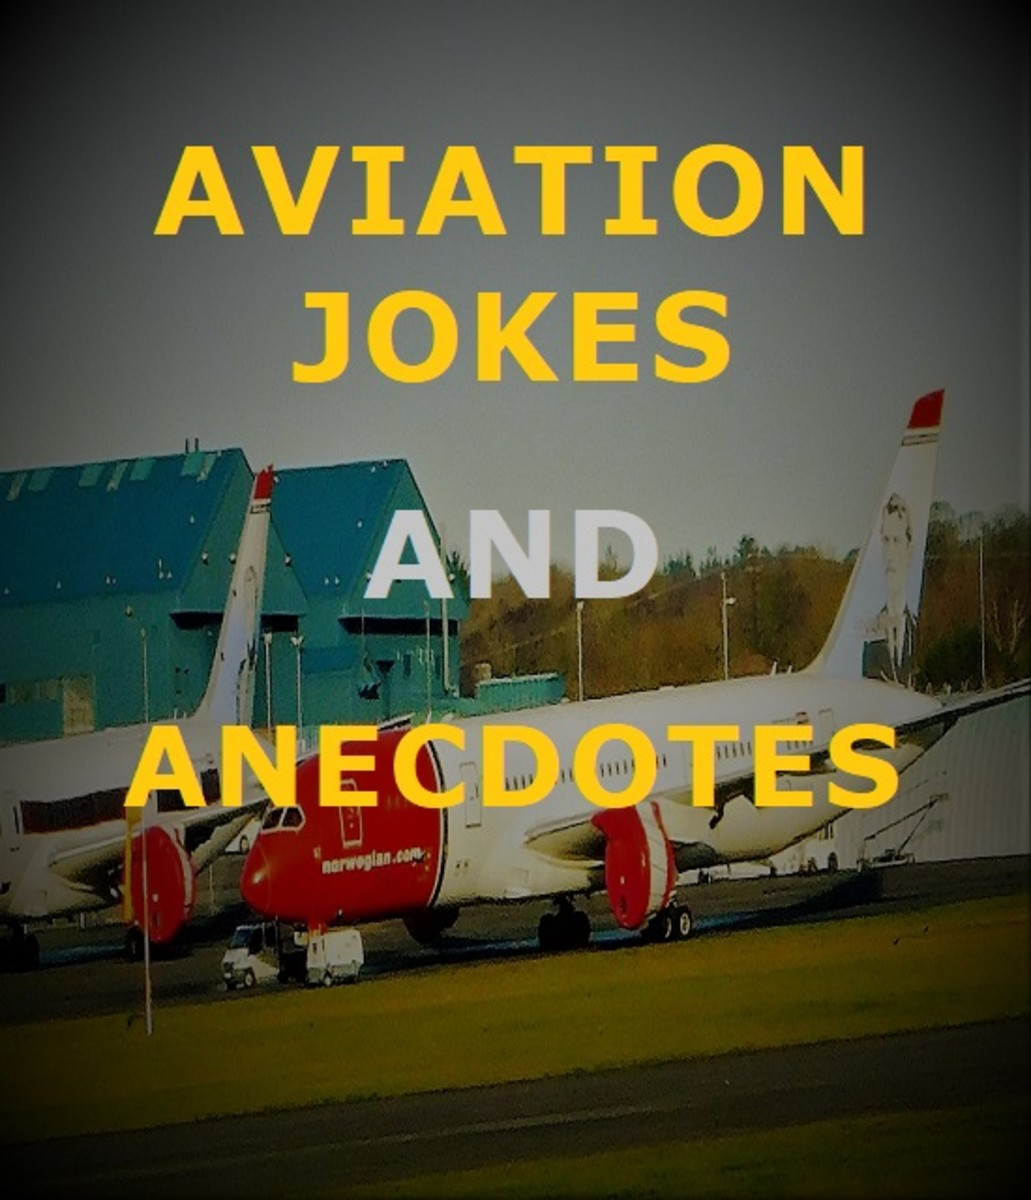 The Funniest Aviation Jokes and Anecdotes